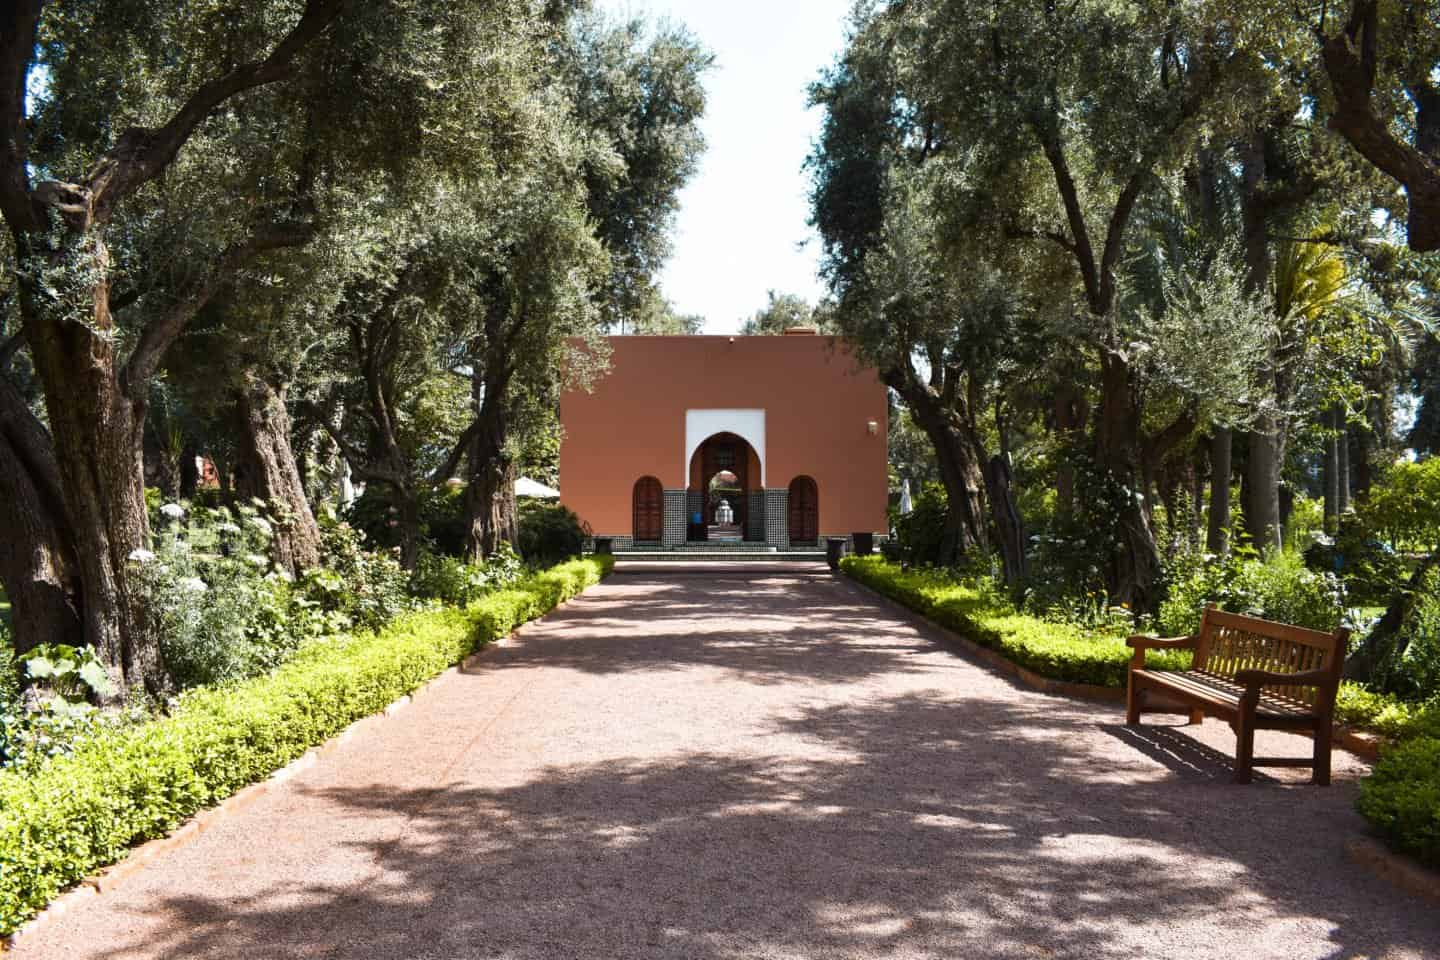 the gardens at La Mamounia